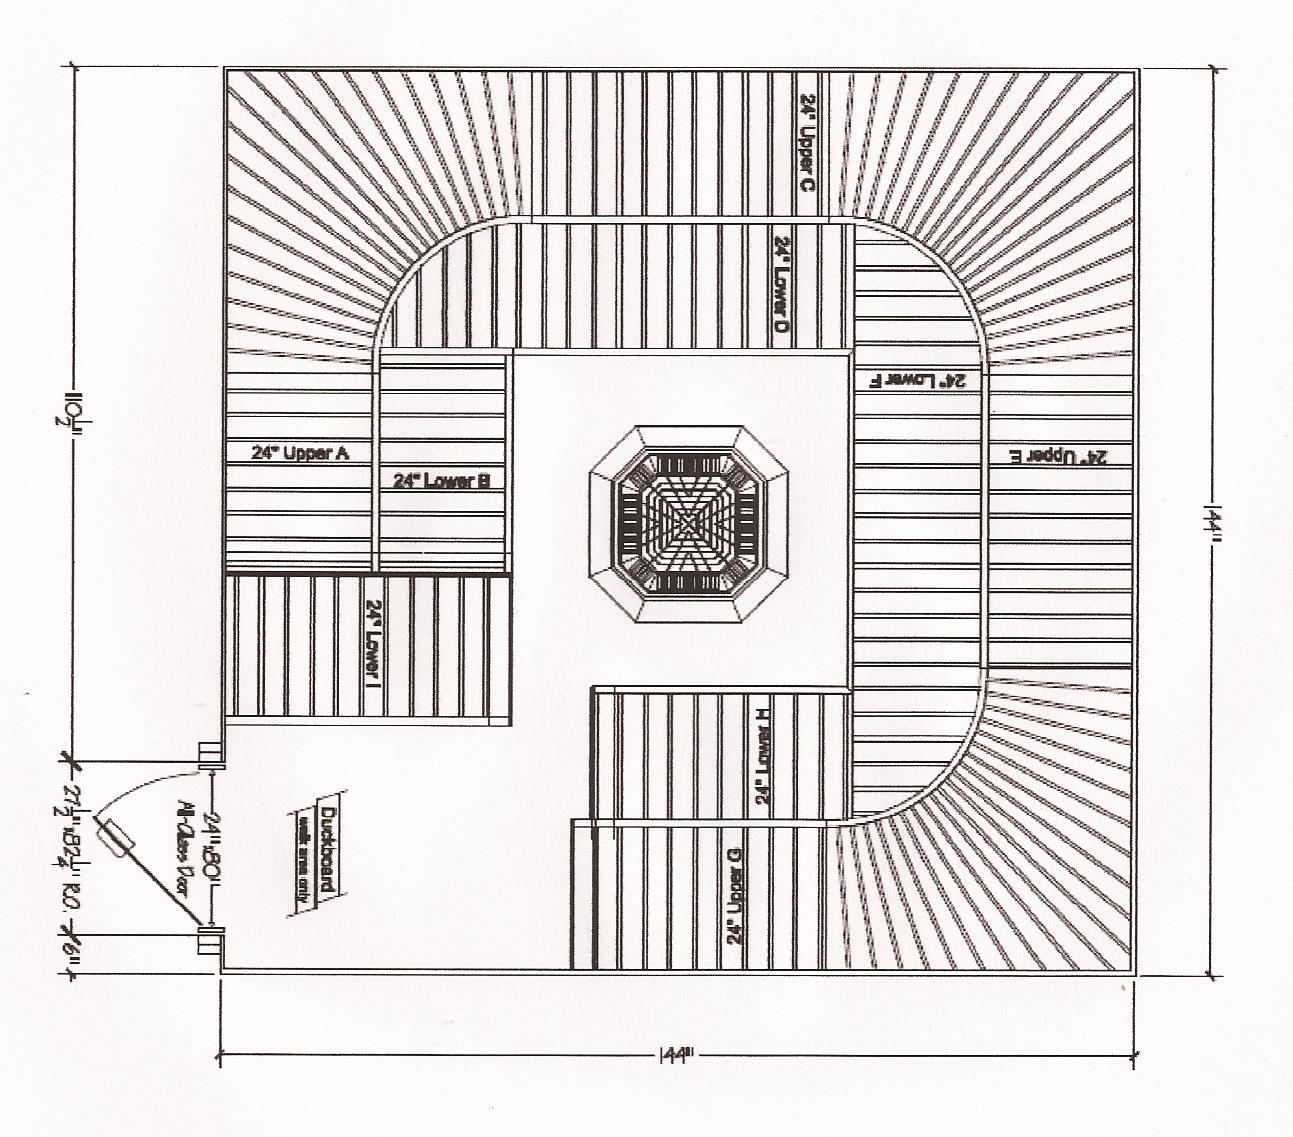 Floor plan saunatimes for Sauna floor plans